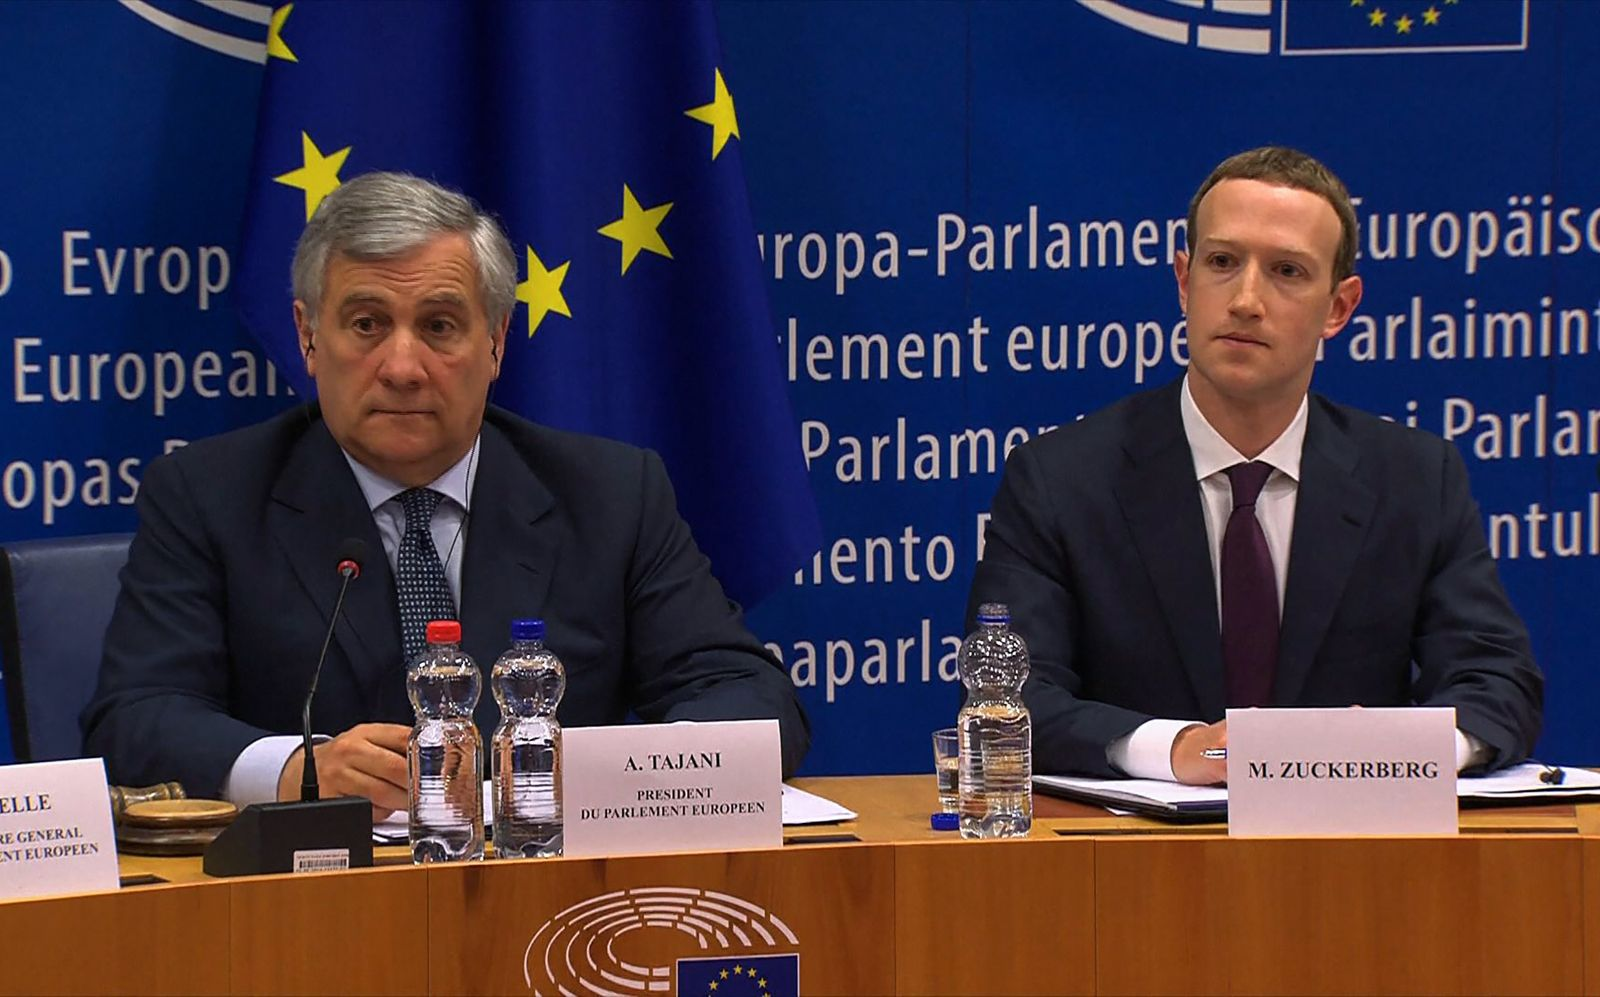 Zuckerberg / EU-Parlament